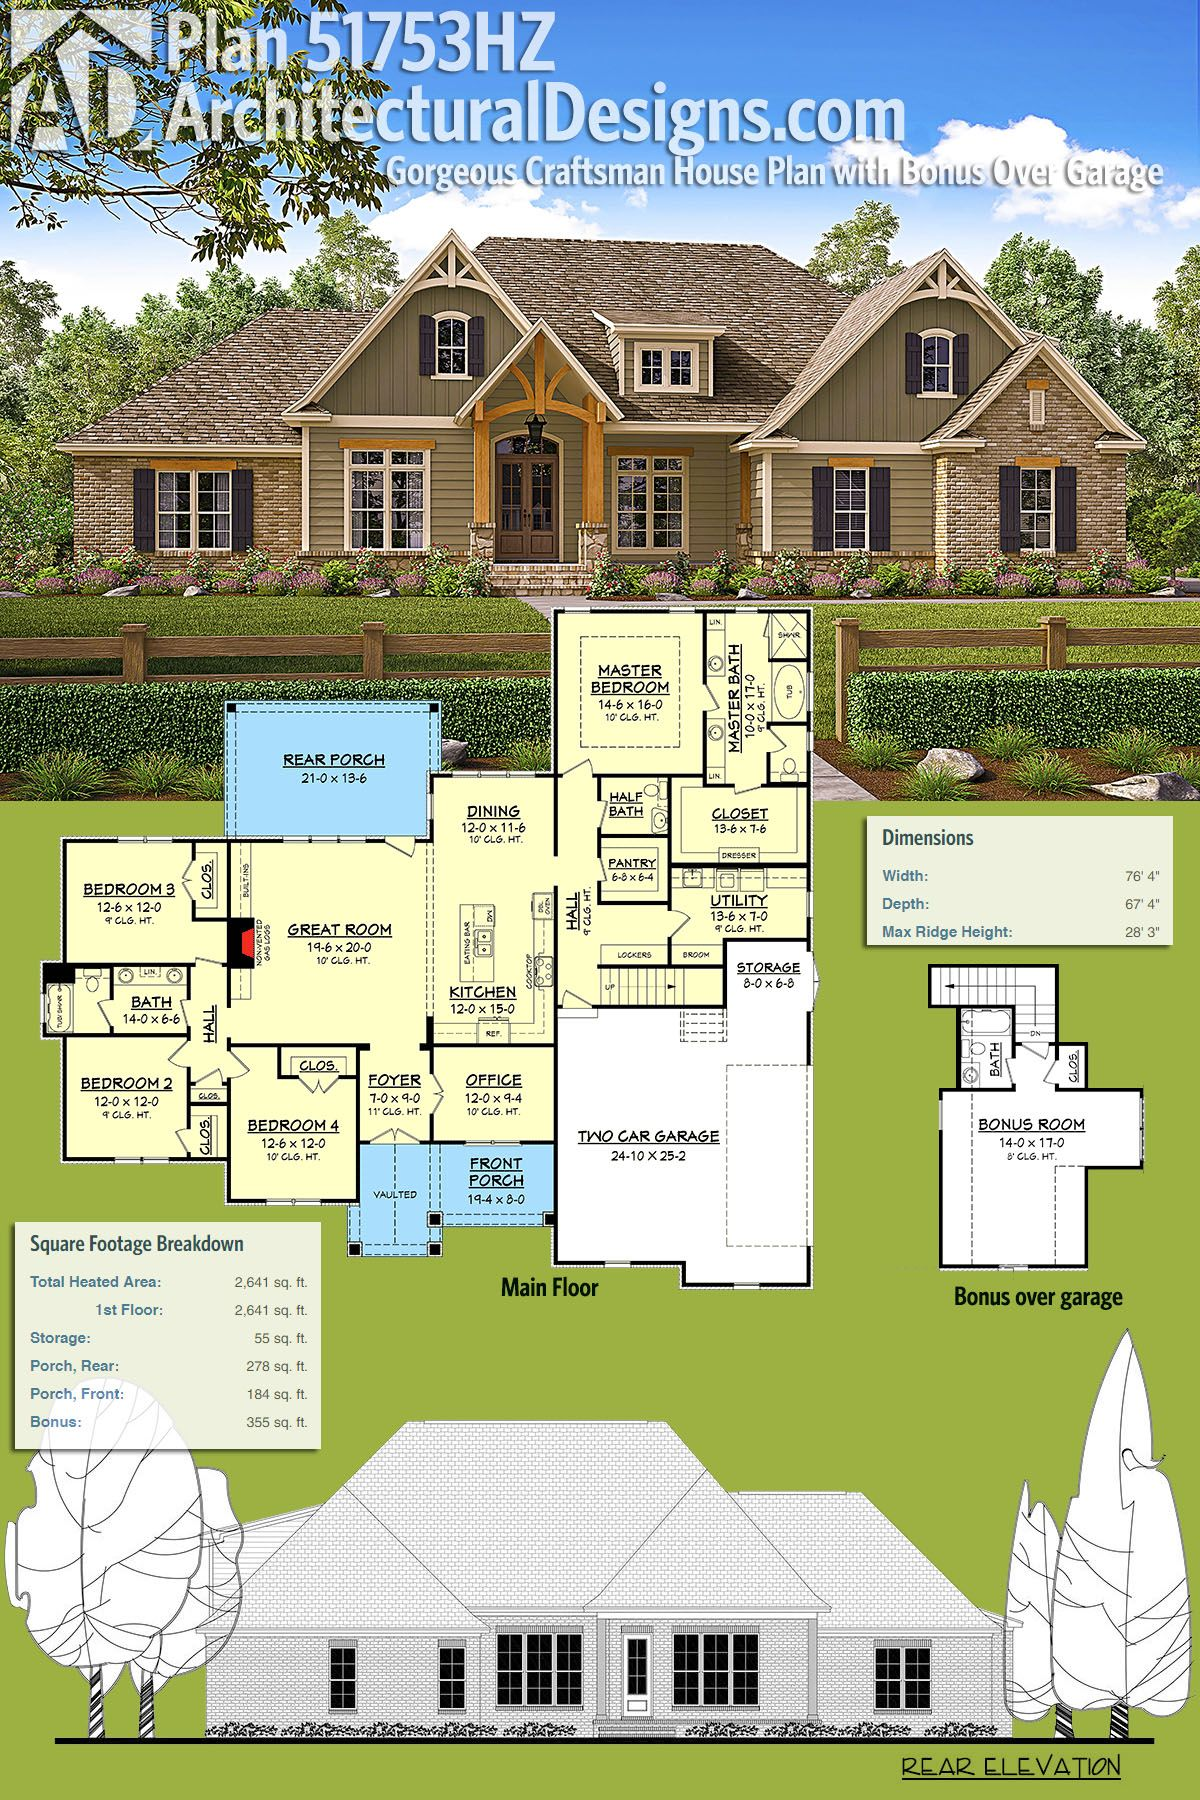 Architectural Designs House Plan 51753HZ Architectural Designs